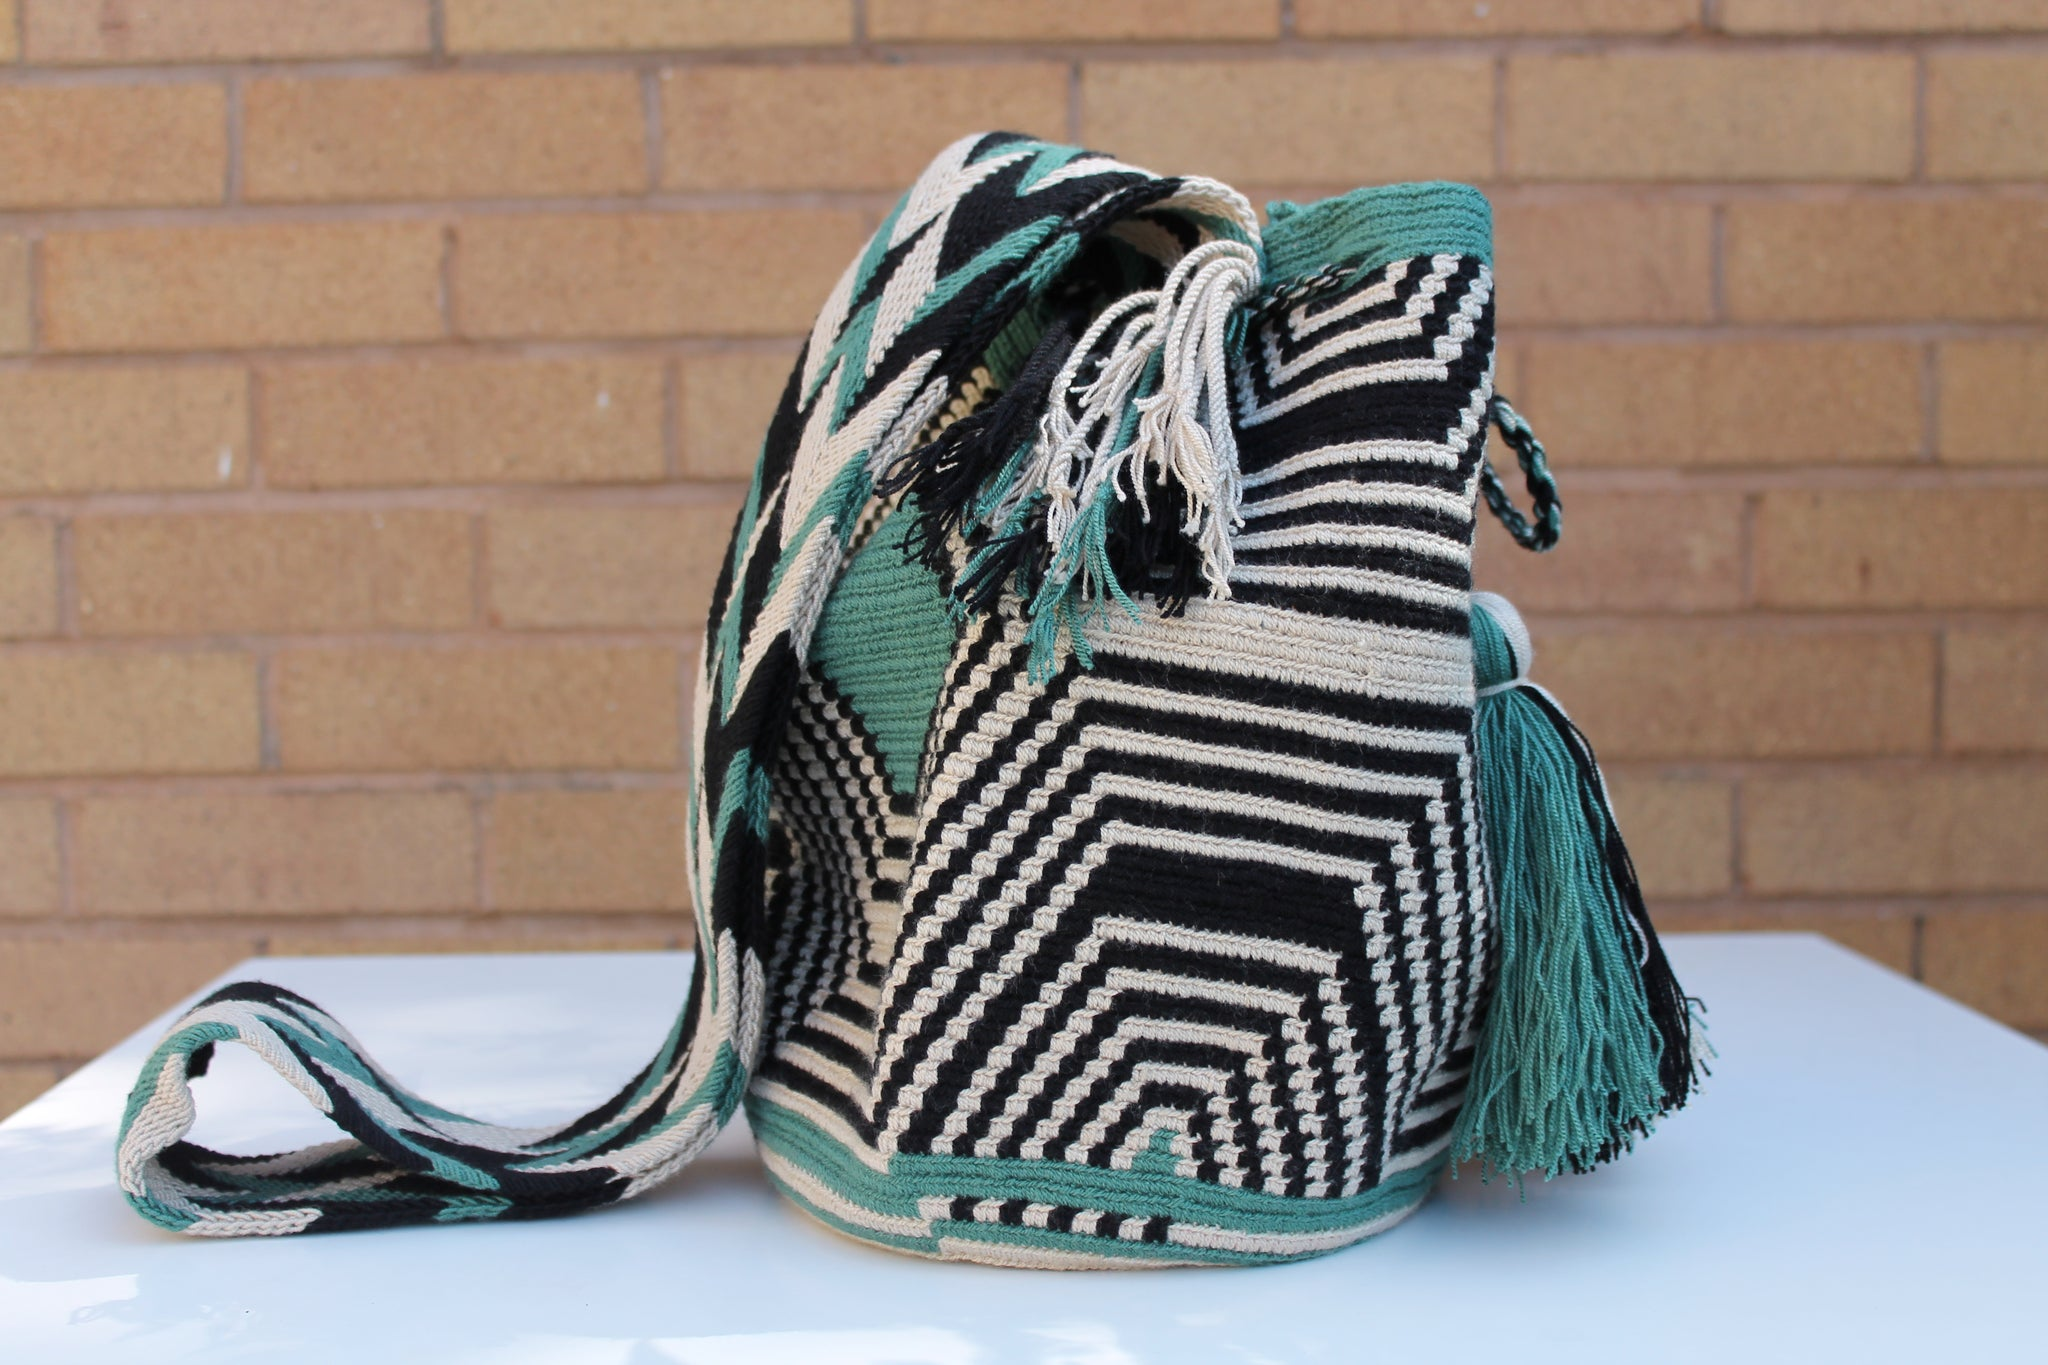 Ii Original Bags Handmade Wayuu Collection Bonita Mochilas 6Yv7gyfb